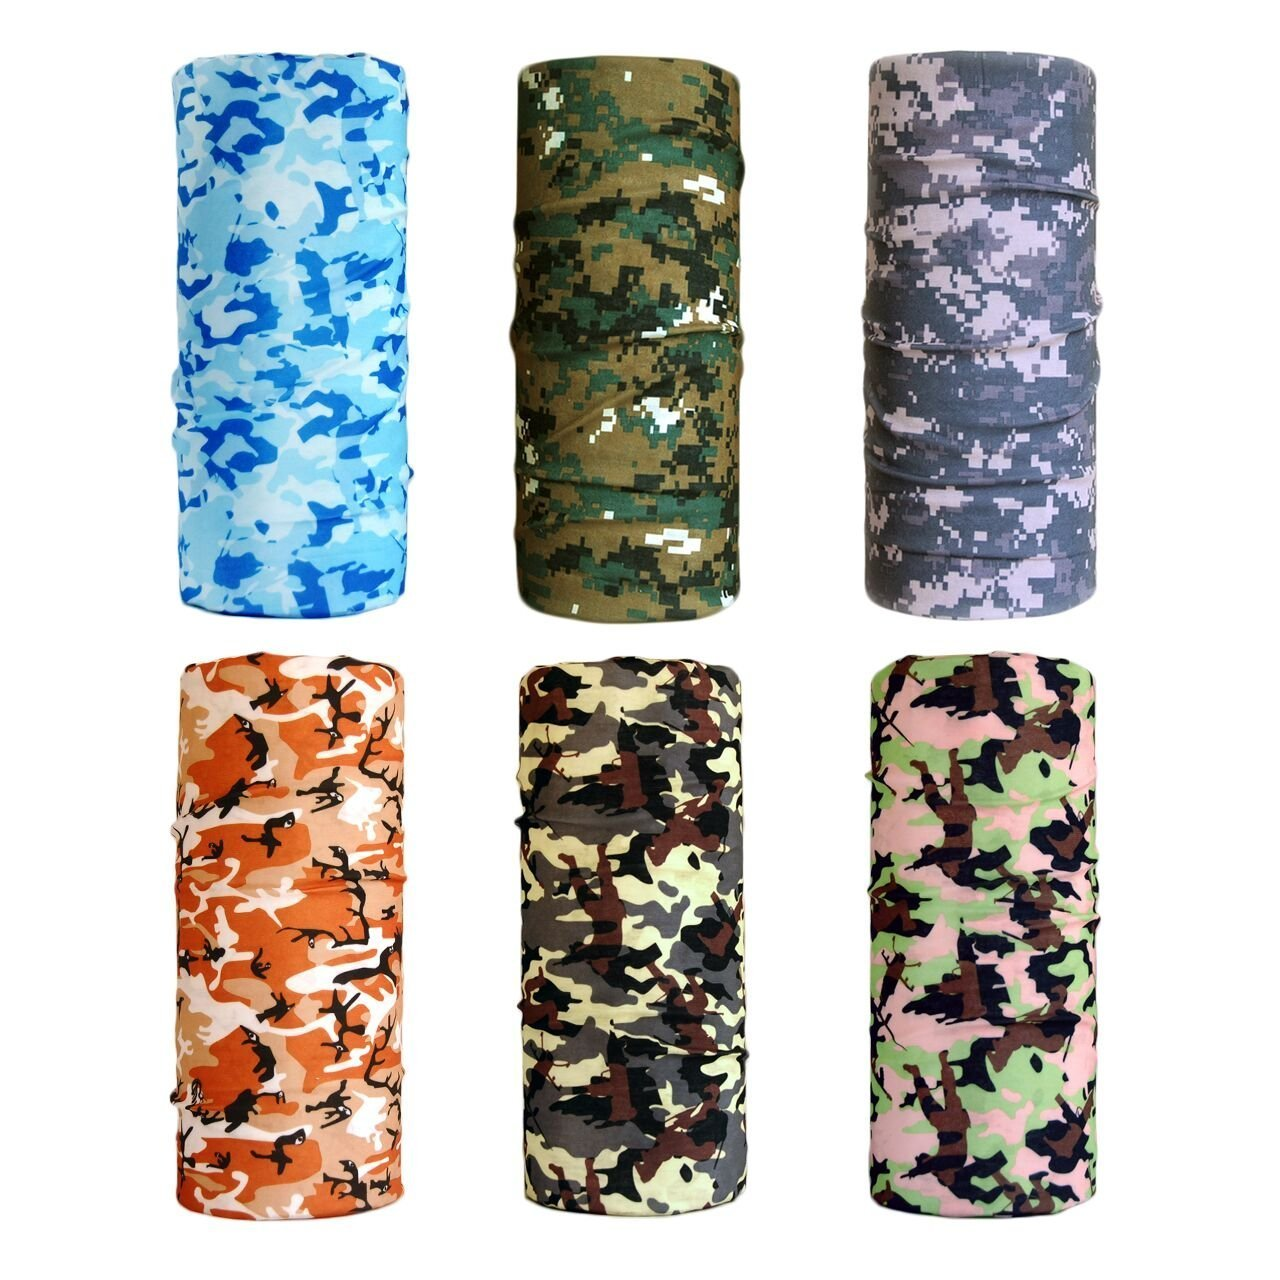 online store 3261a 15dda Neck Gaiter Cool Pack of 6 Pcs Seamless Style Camo Bandanna Headwear Scarf  Wrap Perfect for Running   Hiking, Biking   Riding, Skiing   Snowboarding,  ...